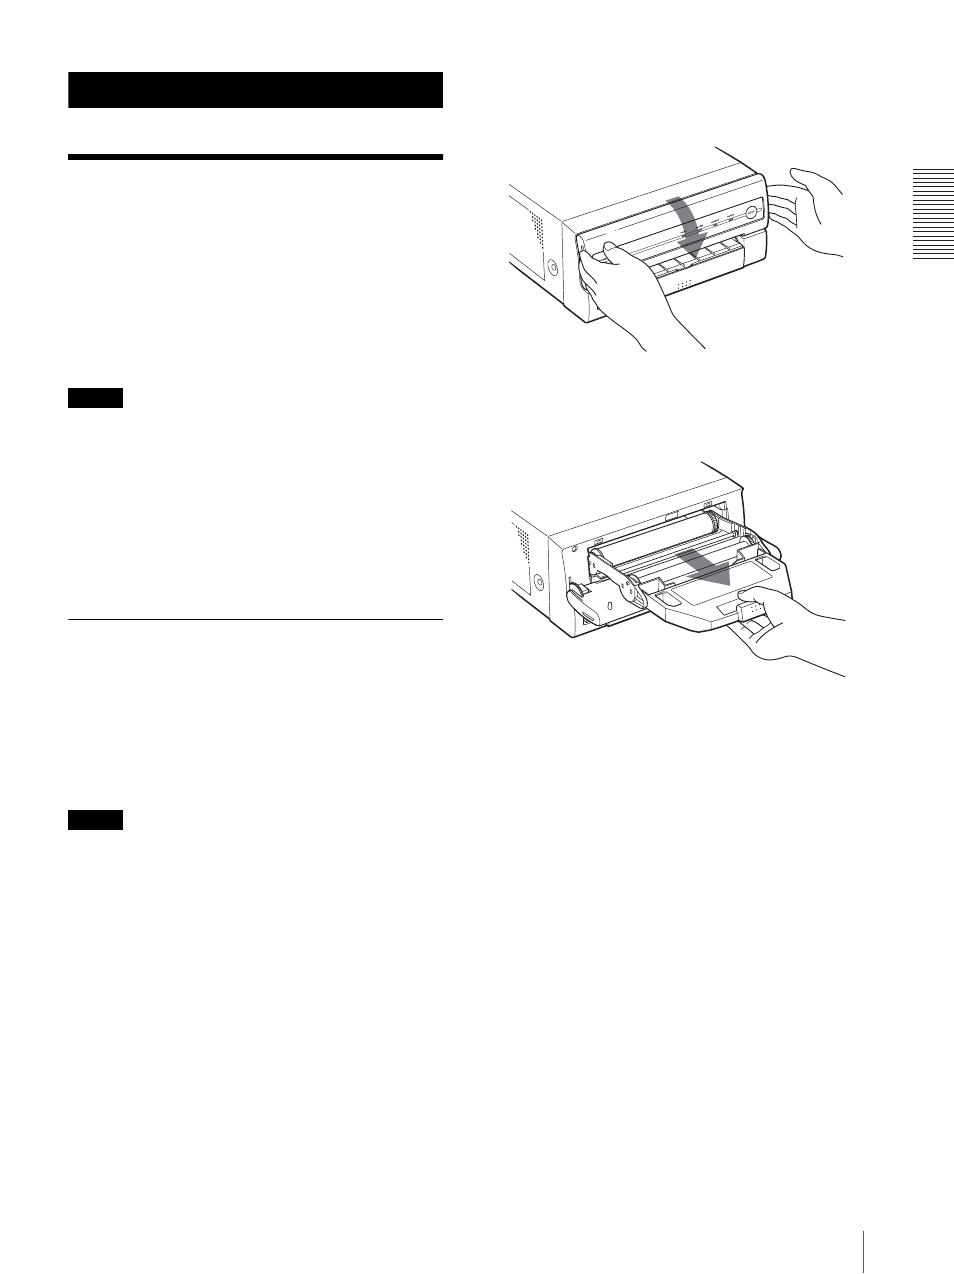 operation before printing loading an ink ribbon cartridge sony rh manualsdir com Sony Wireless Headphones Manual Sony Owner's Manual Online